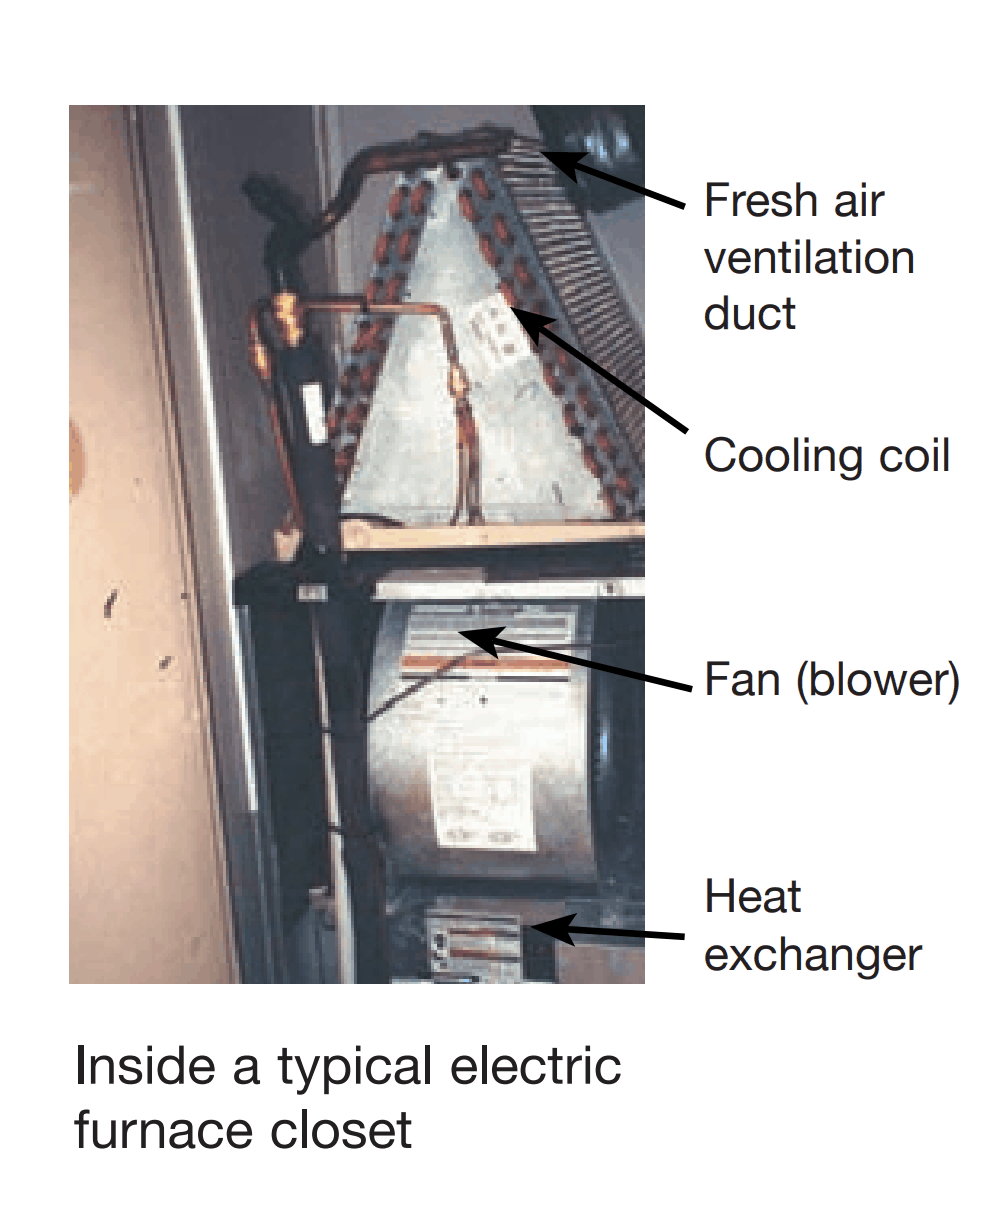 hight resolution of typical electric furnace in a mobile home with